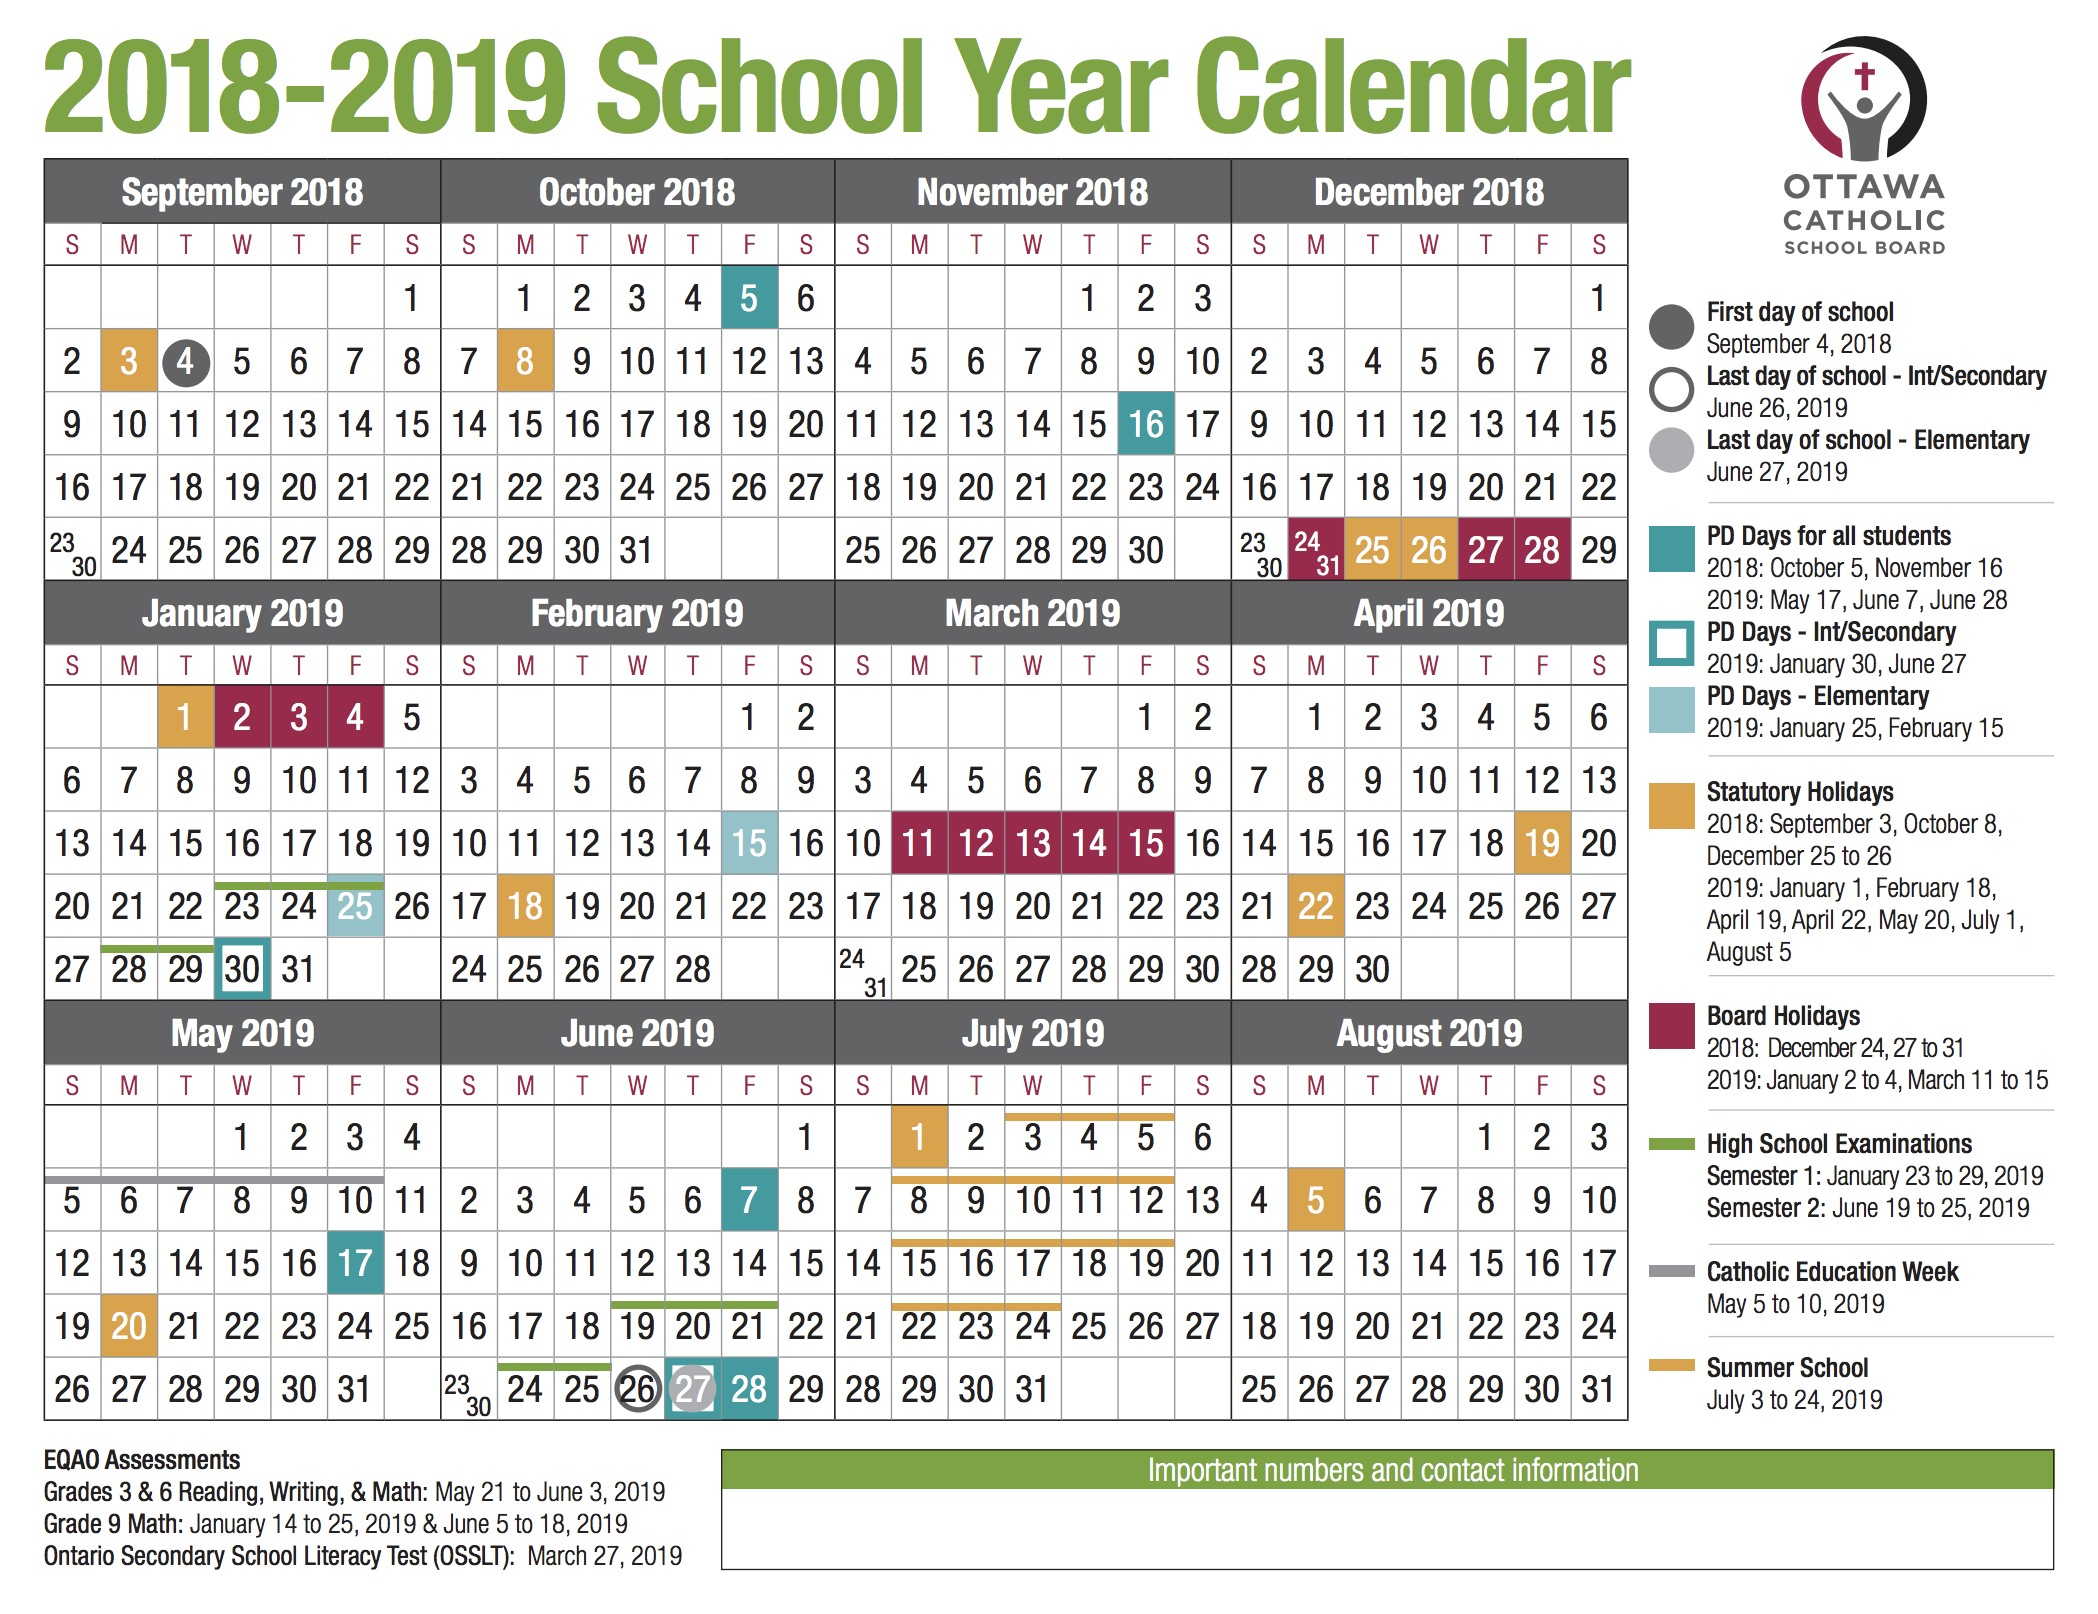 March 2019 Calendar Landscape Más Recientes School Year Calendar From the Ocsb Of March 2019 Calendar Landscape Más Recientemente Liberado December 2019 Calendar